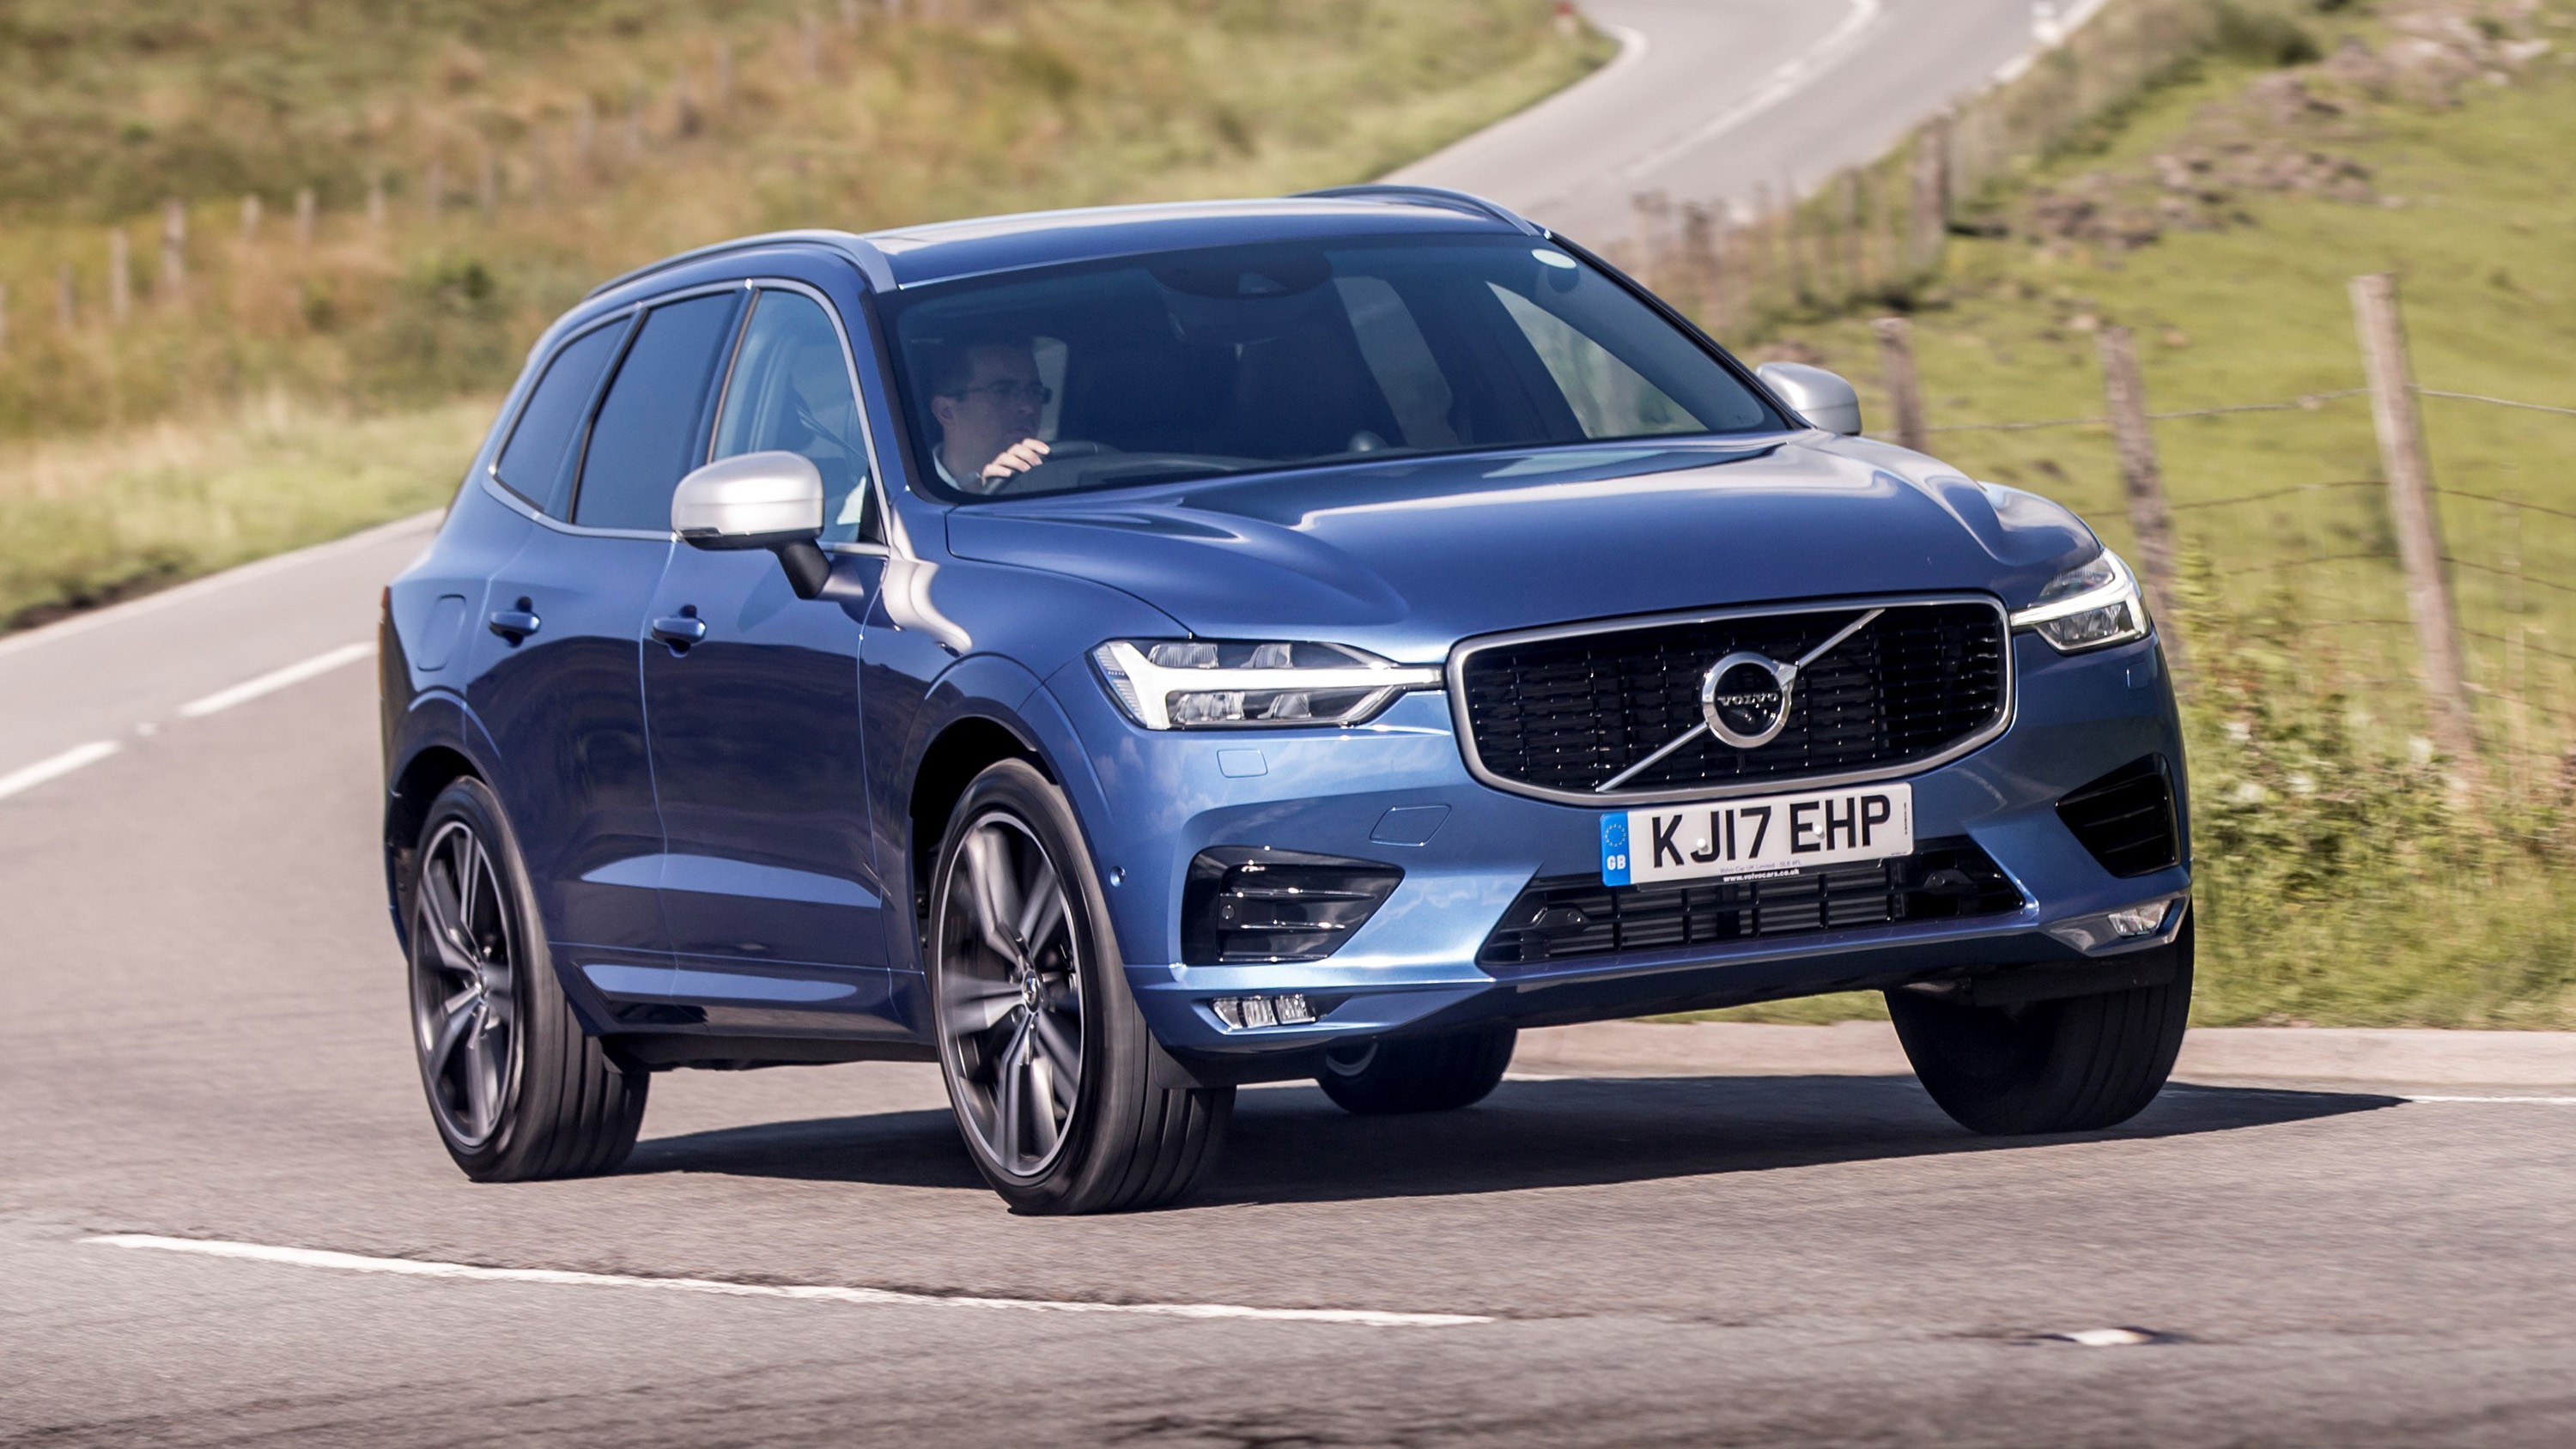 volvo xc60 t8 review 407bhp hybrid driven 2017 2018 top gear. Black Bedroom Furniture Sets. Home Design Ideas